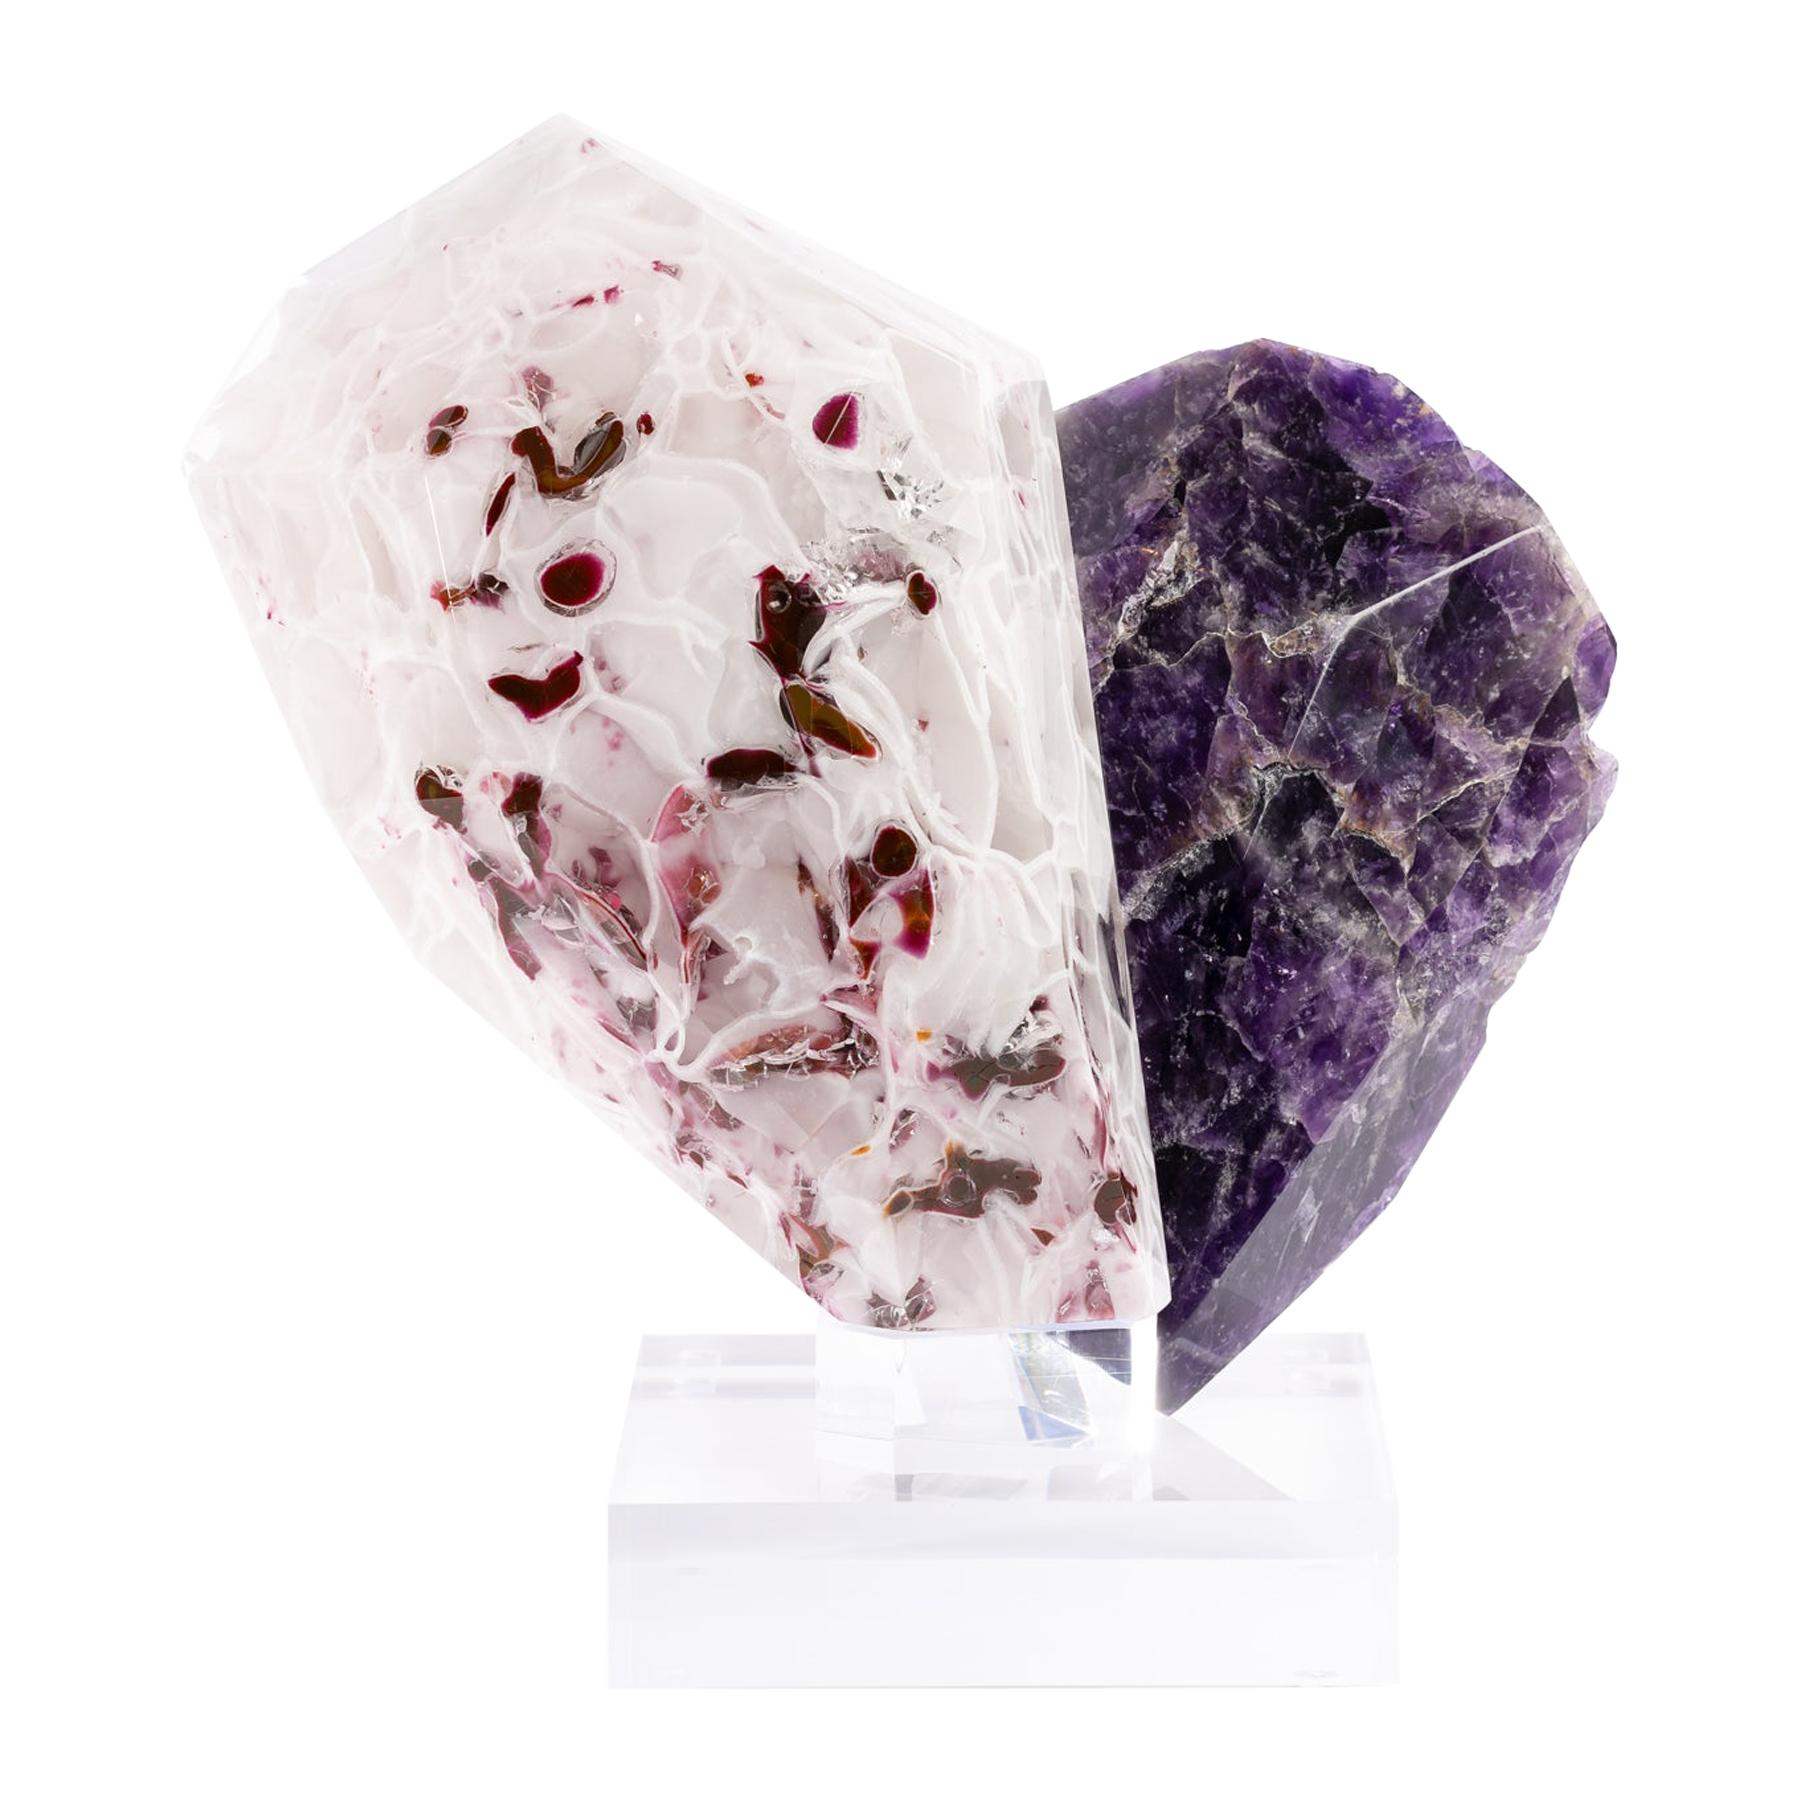 Uruguay Amethyst and Boil Glass fusion Sculpture